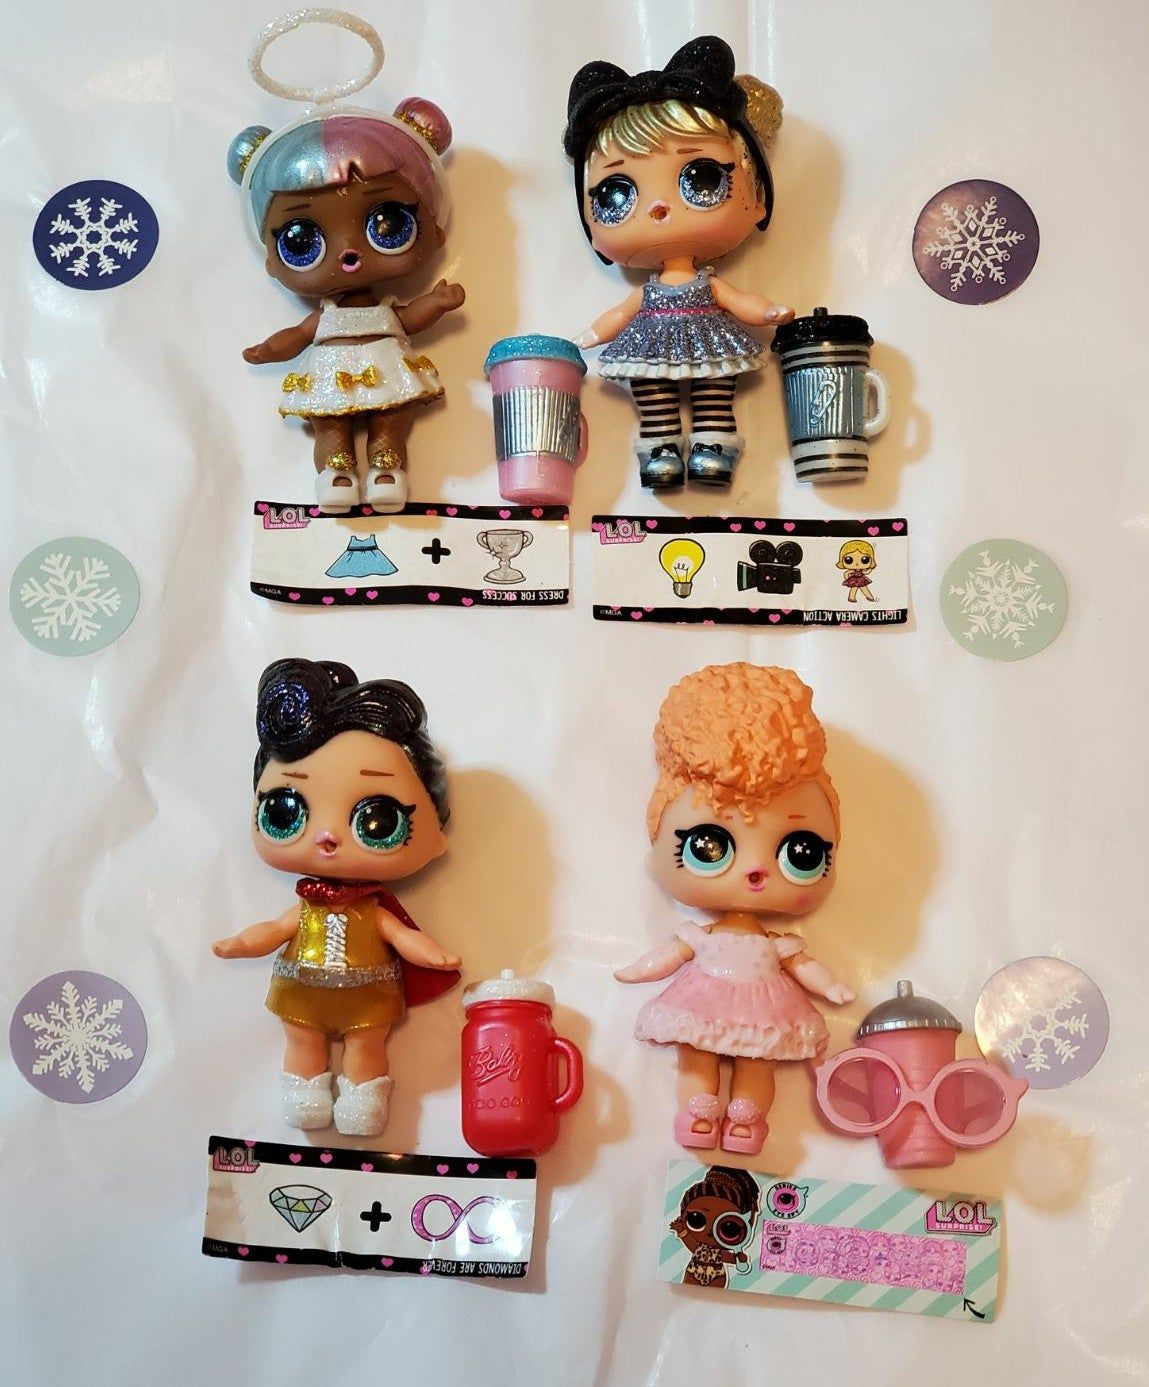 Lol Surprise Dolls Glam Glitter Series and Eye Spy Series